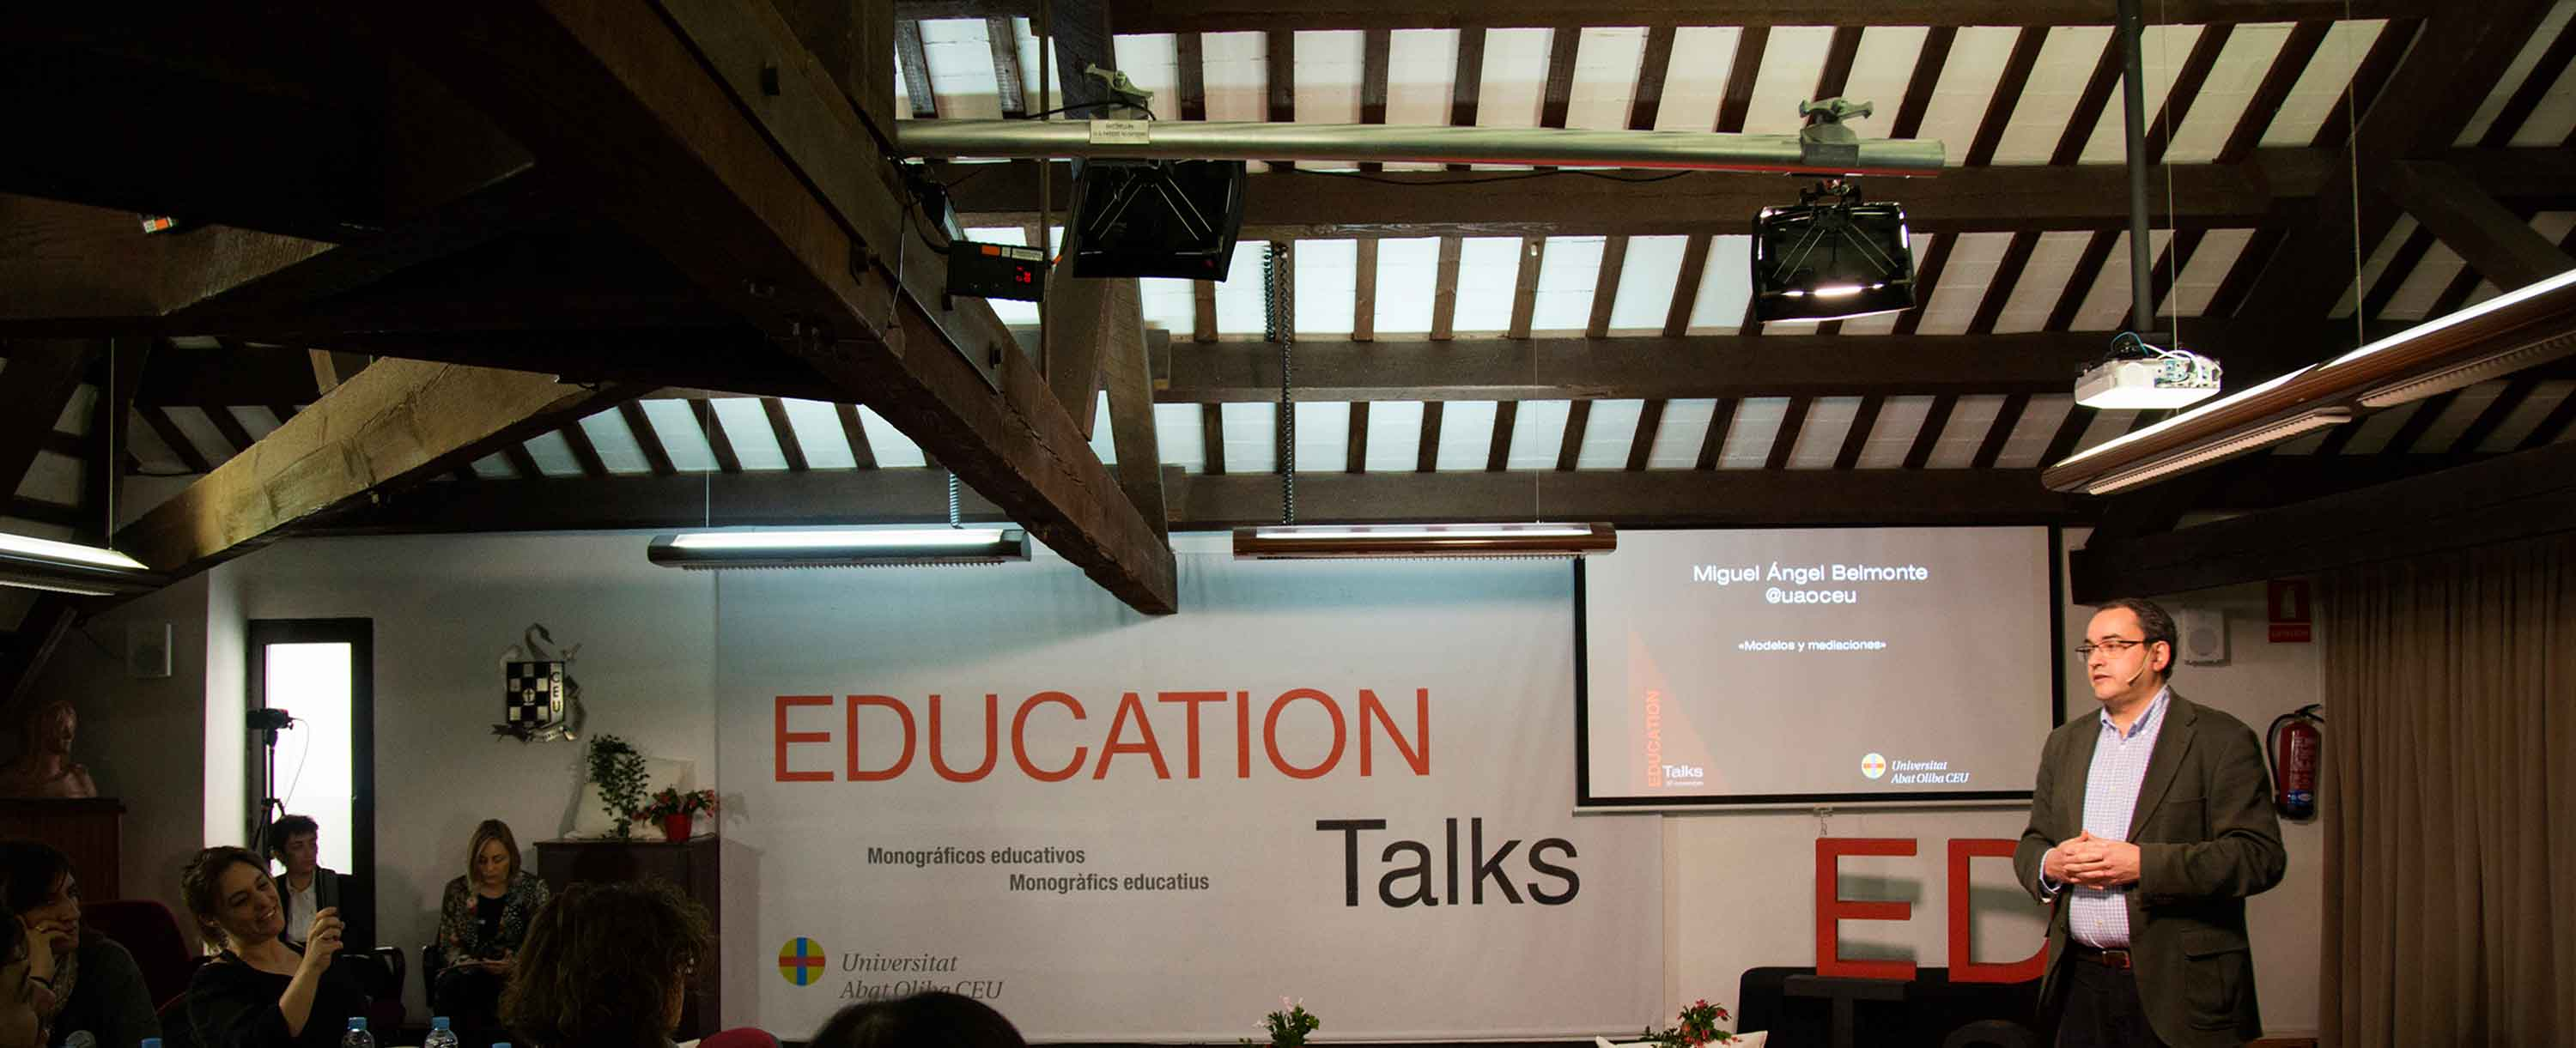 base-slide-web-ed-talks_Noviembre-30